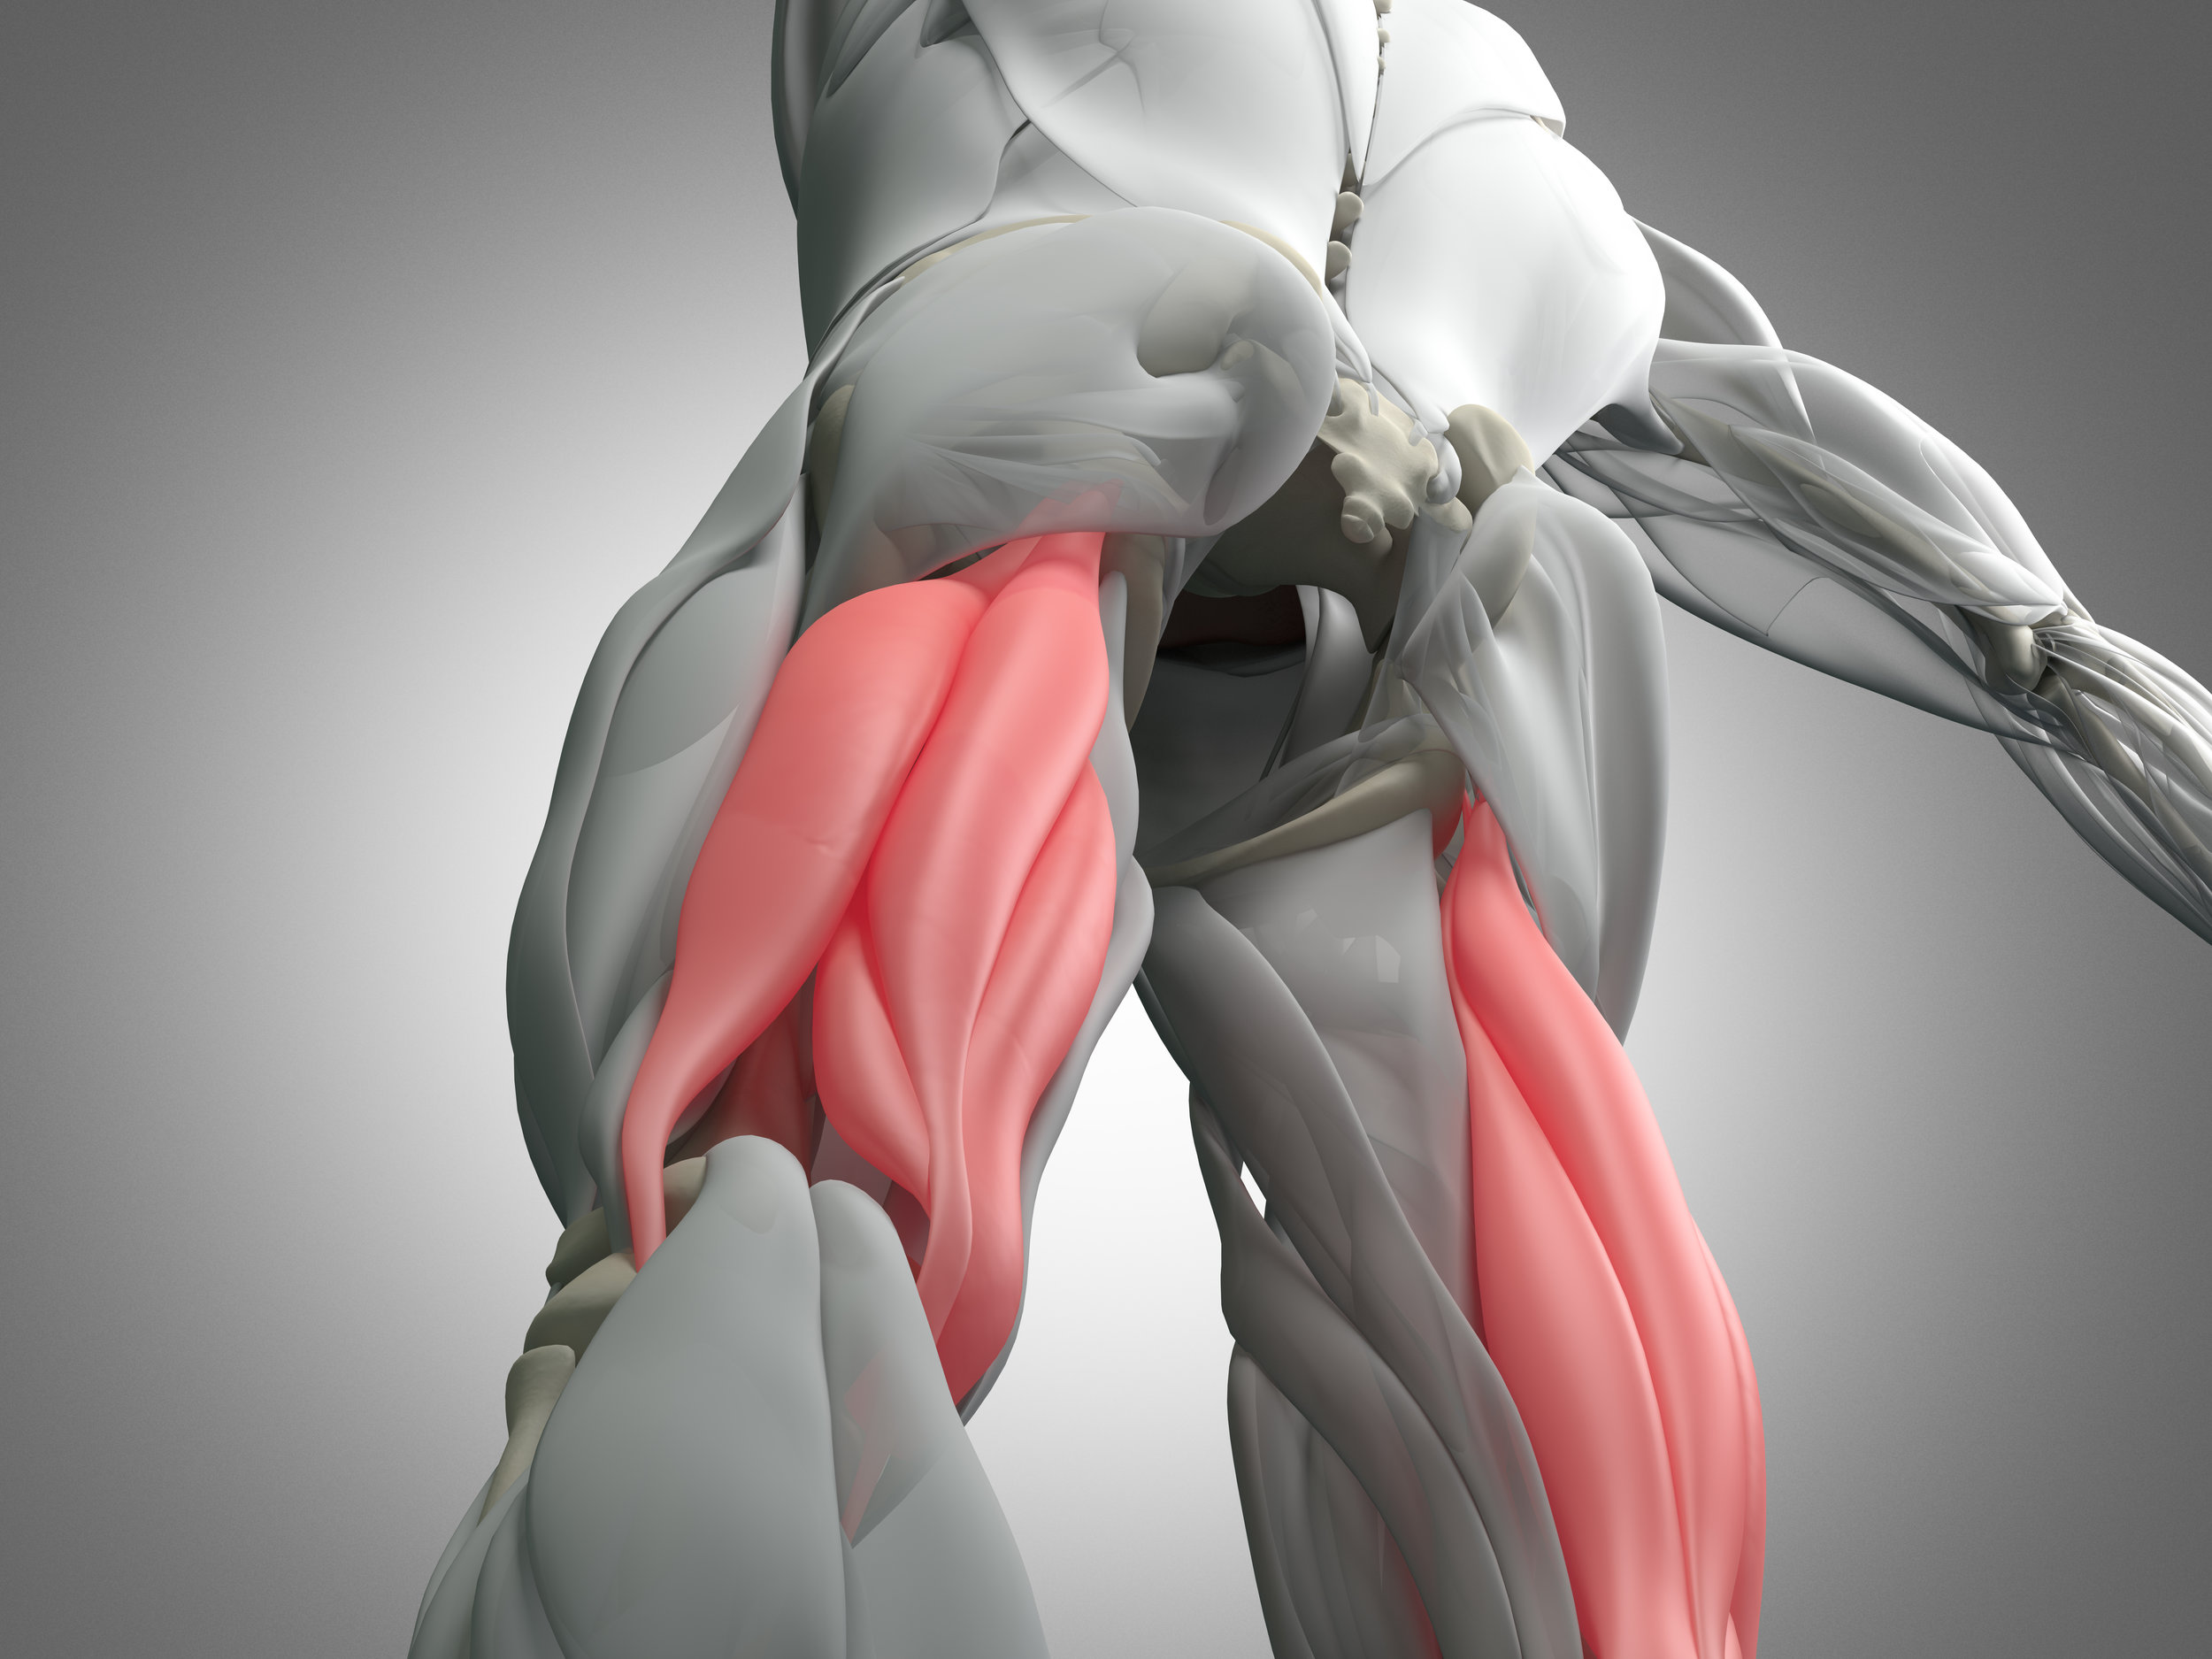 Hamstring Hero  Everything to know to be a Hamstring Hero - -Diagnostic and Prognosis Tips-Progressive Week by Week Rehabilitation Plans-Safe Return to Sport After a Hamstring Injury-Hamstring Injury Prevent-Strength and Conditioning Tips